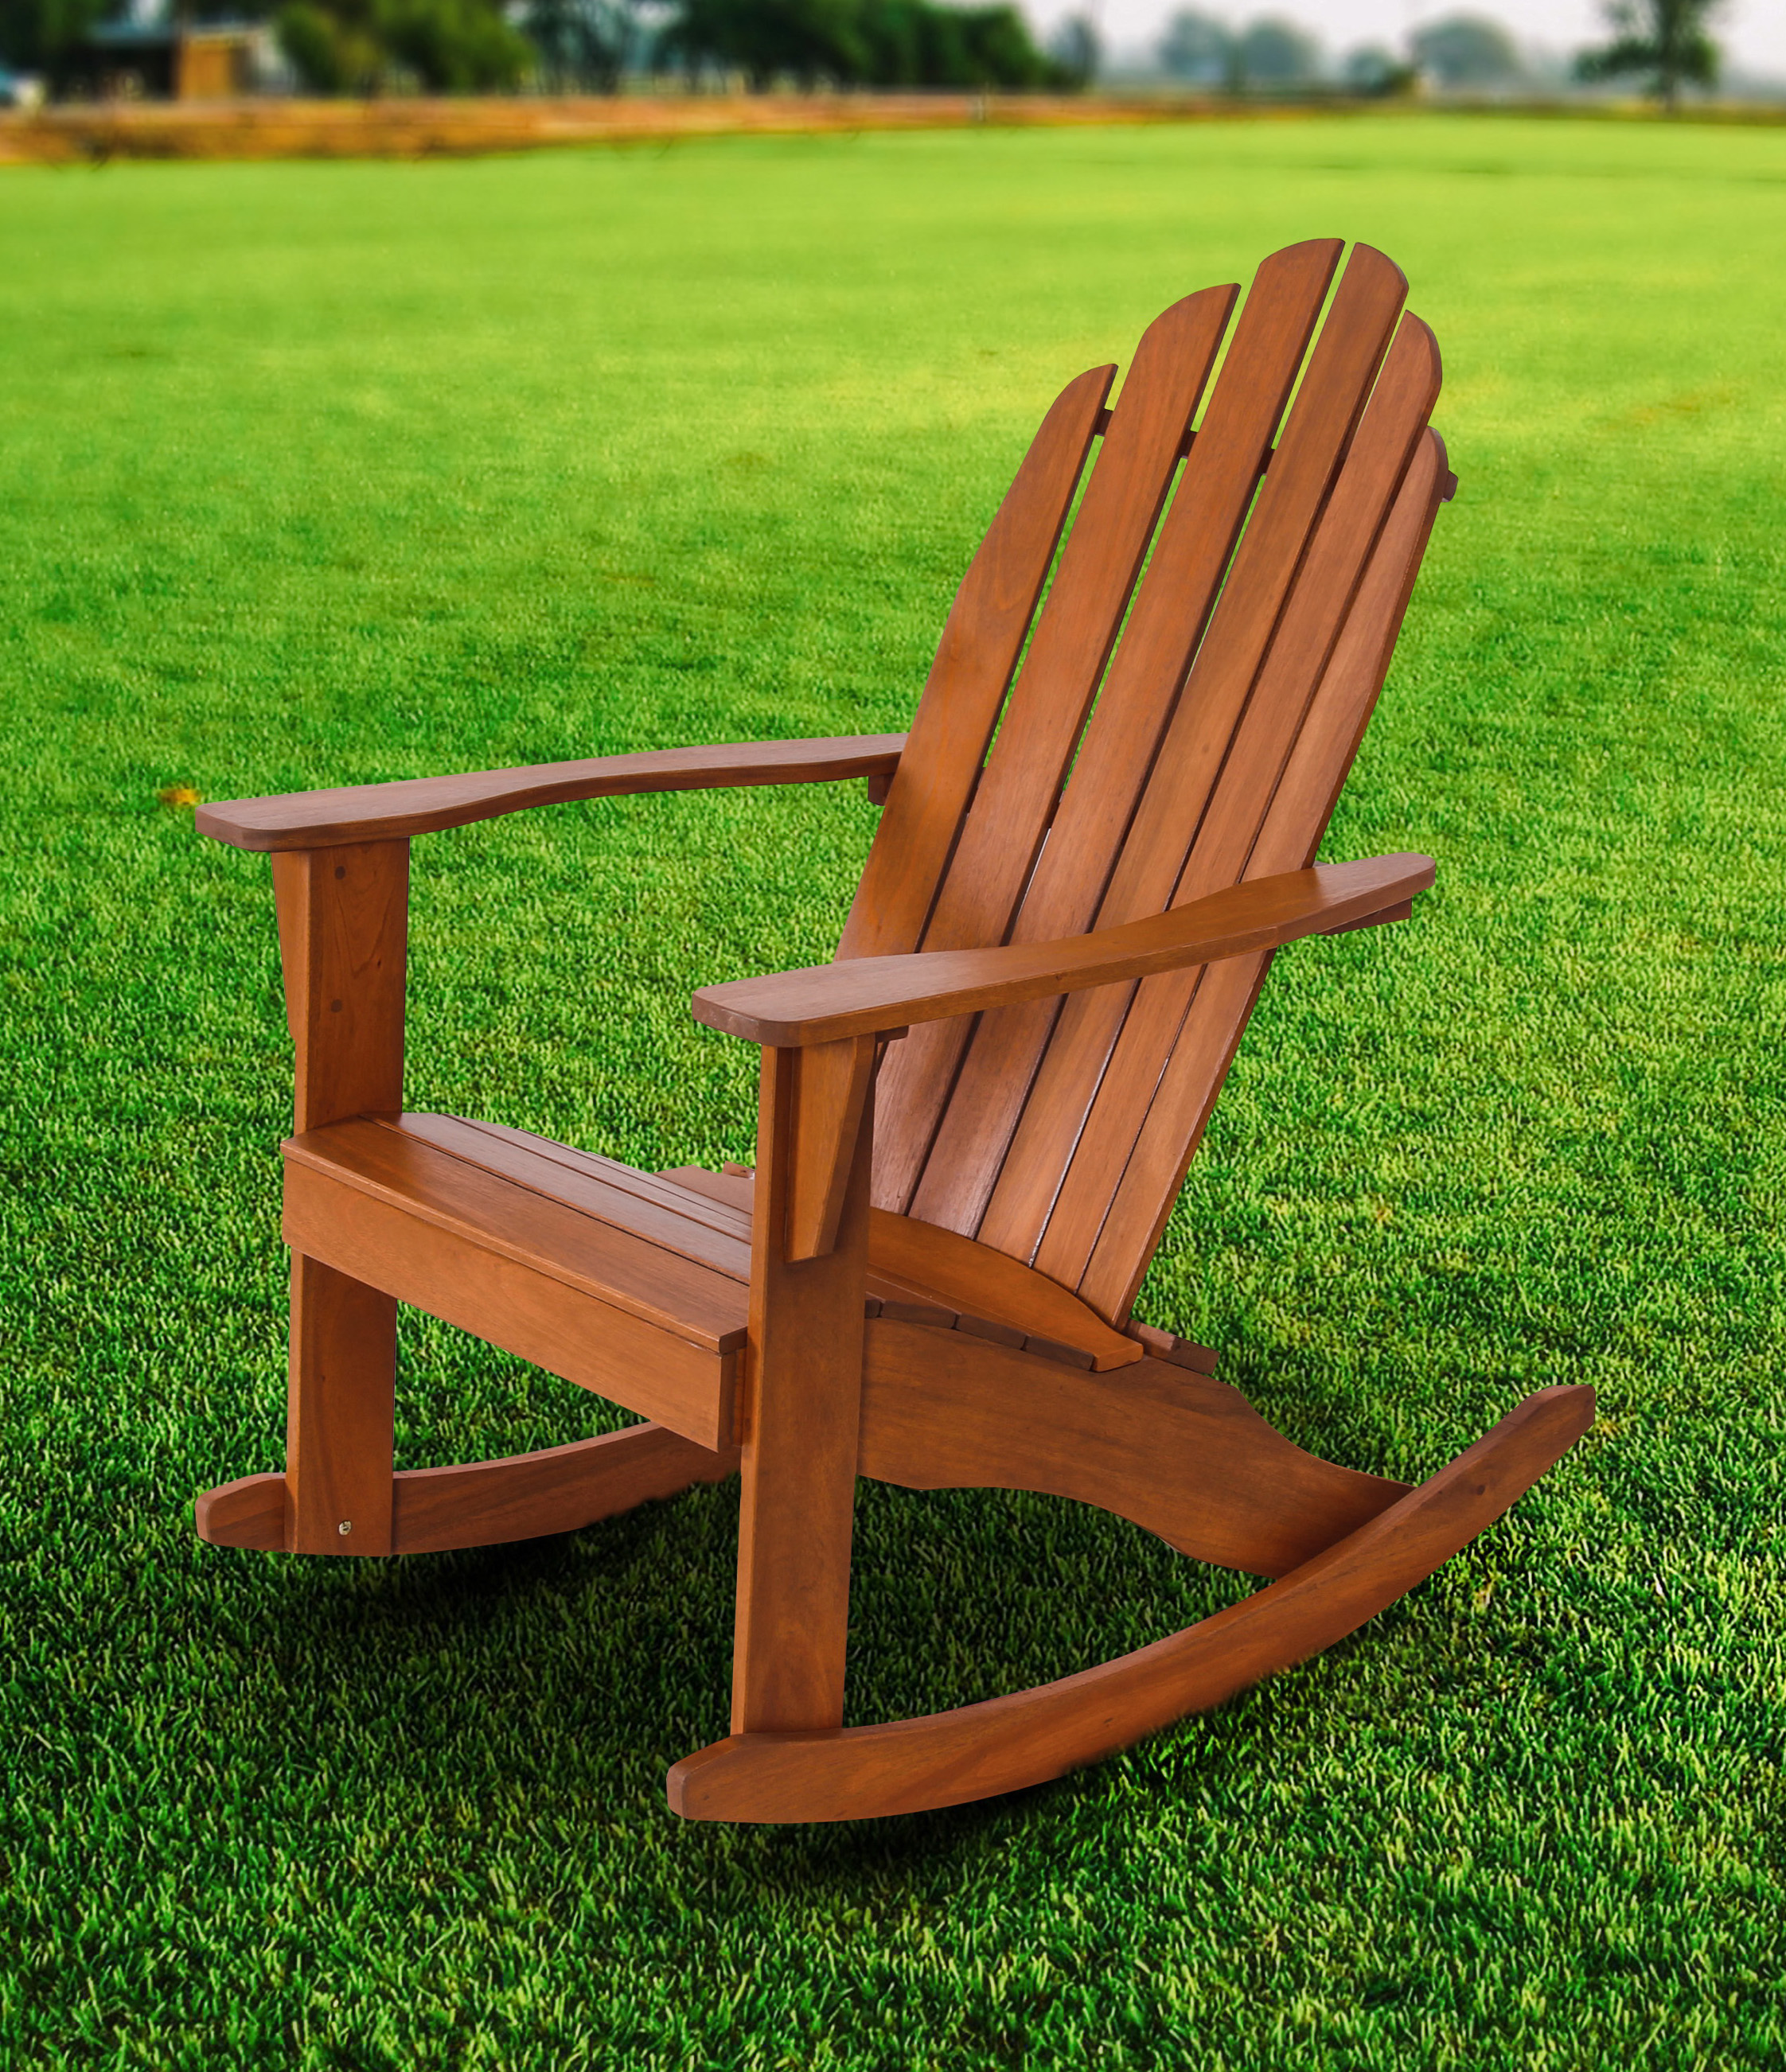 Mainstays Wood Adirondack Rocking Chair, Natural